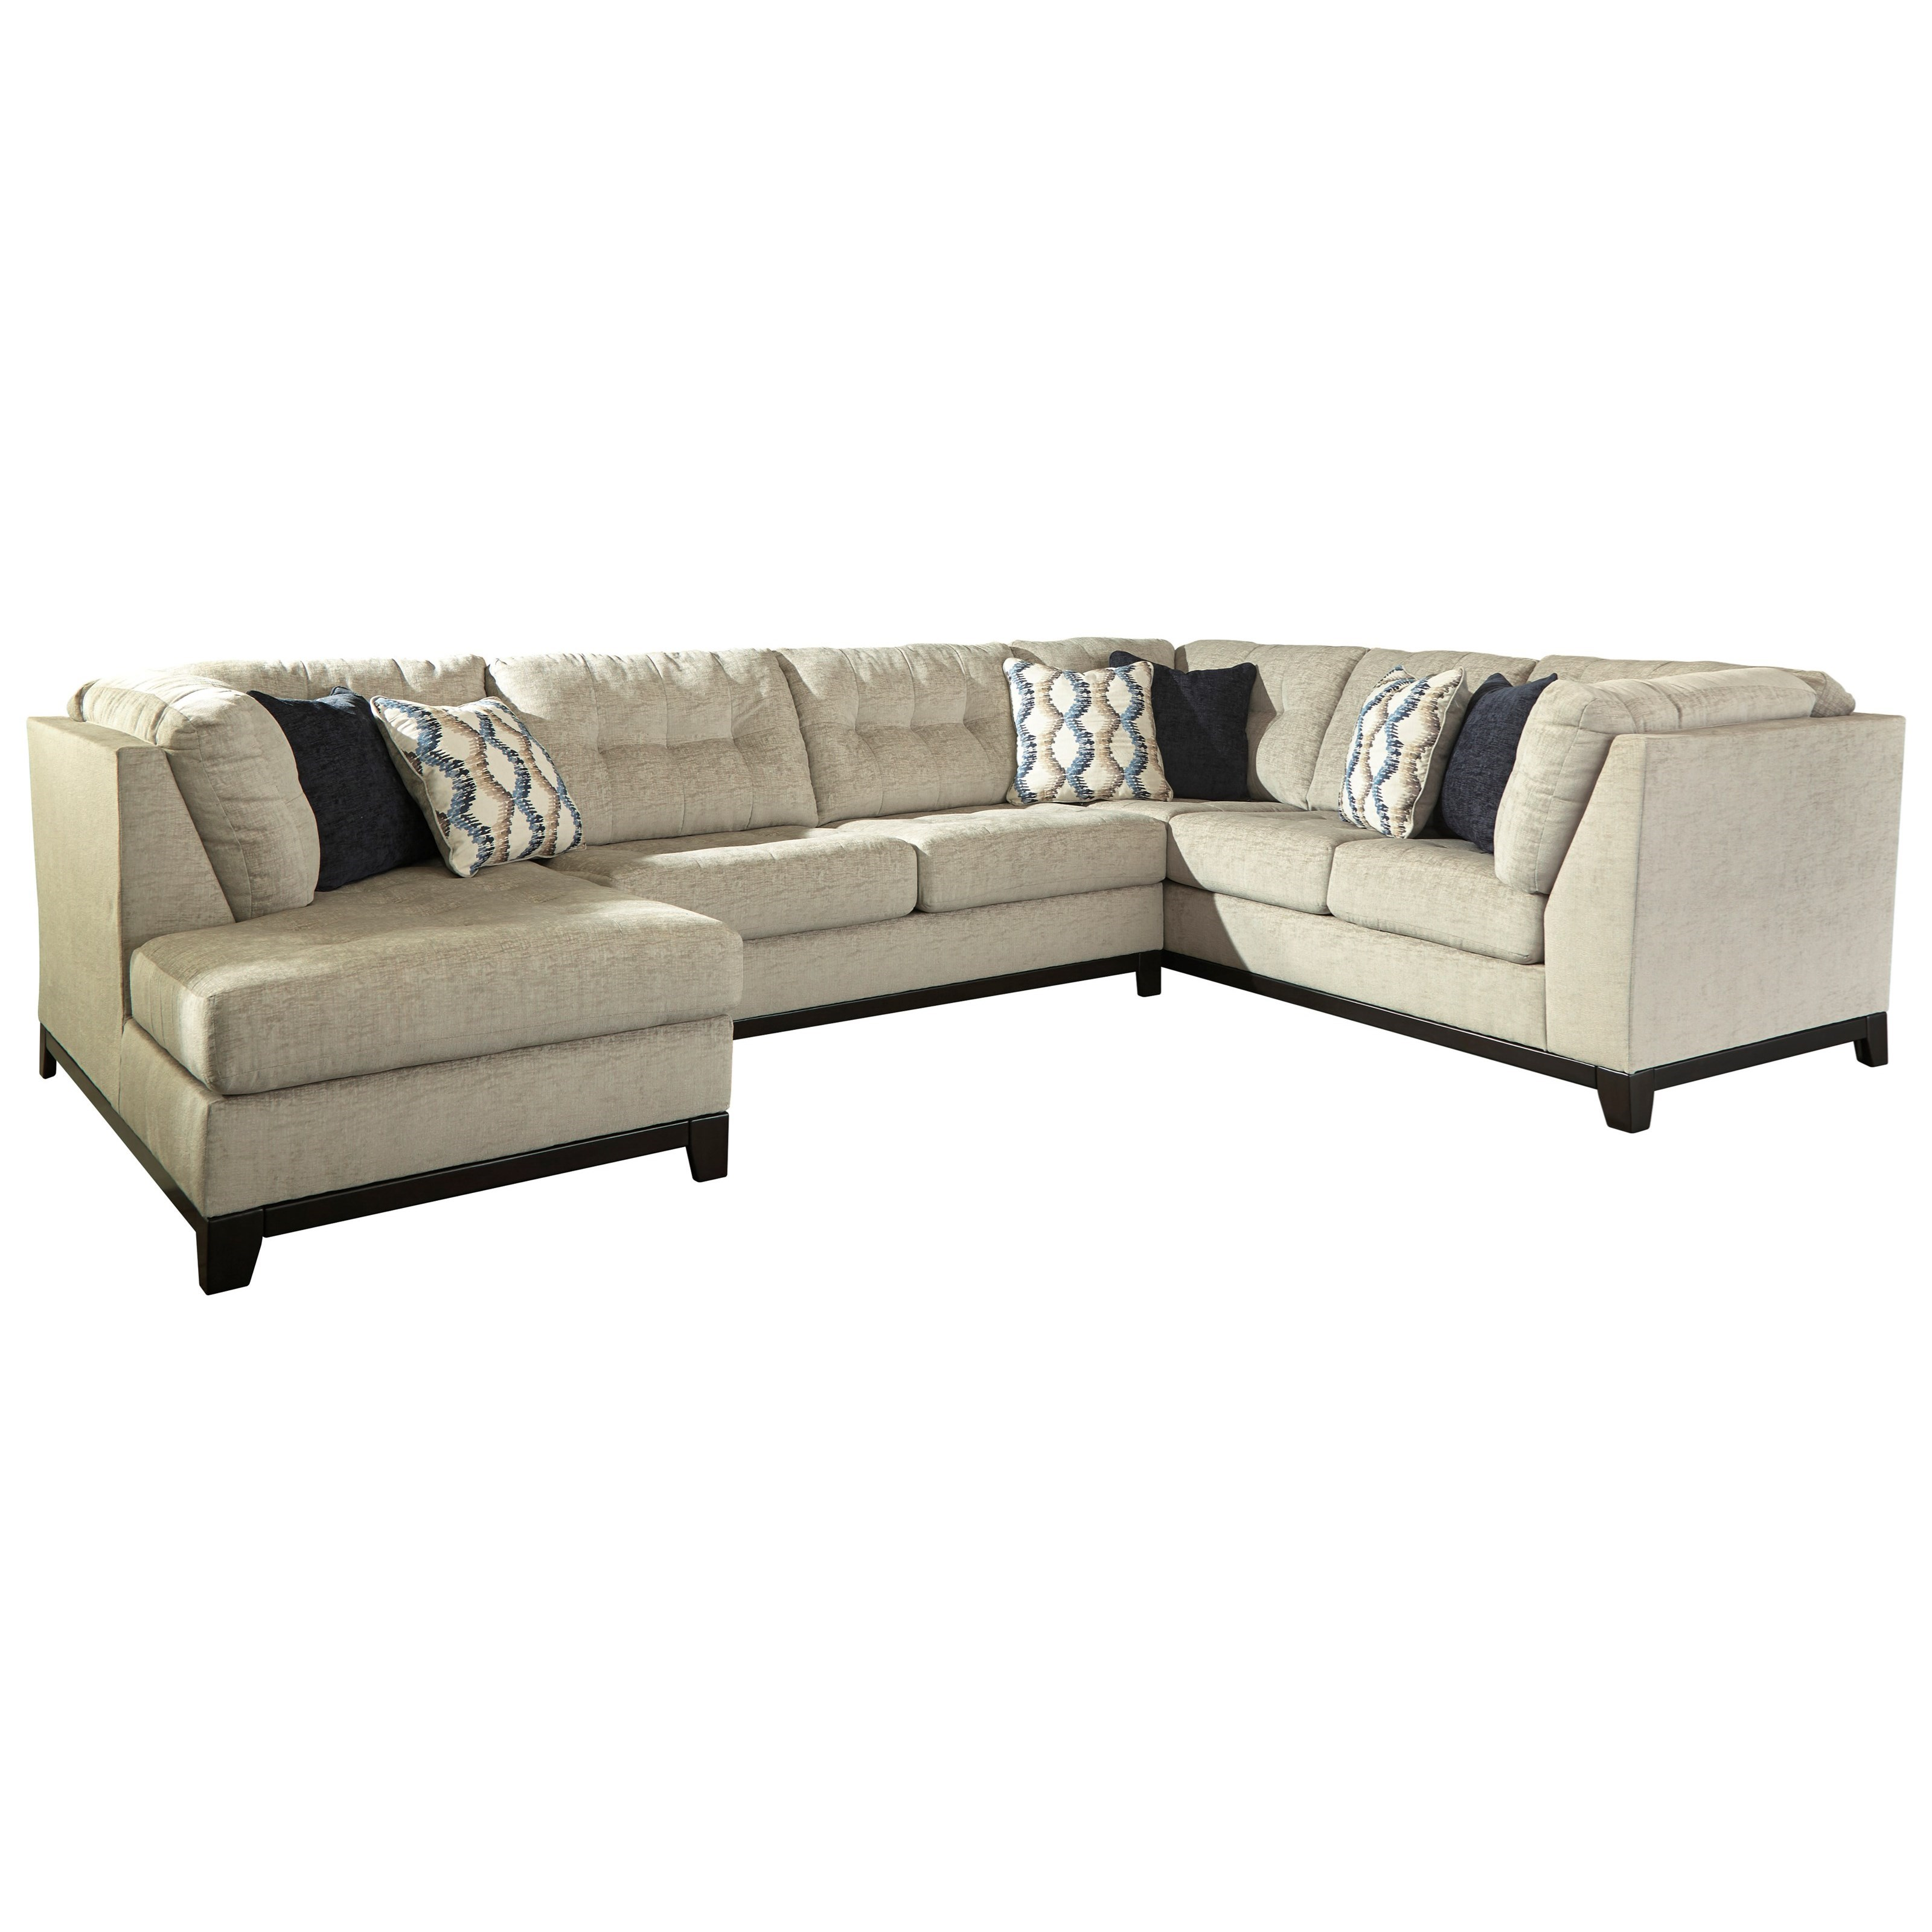 Benchcraft by ashley beckendorf 3 piece sectional w left for Sofa chaise 1 lugar